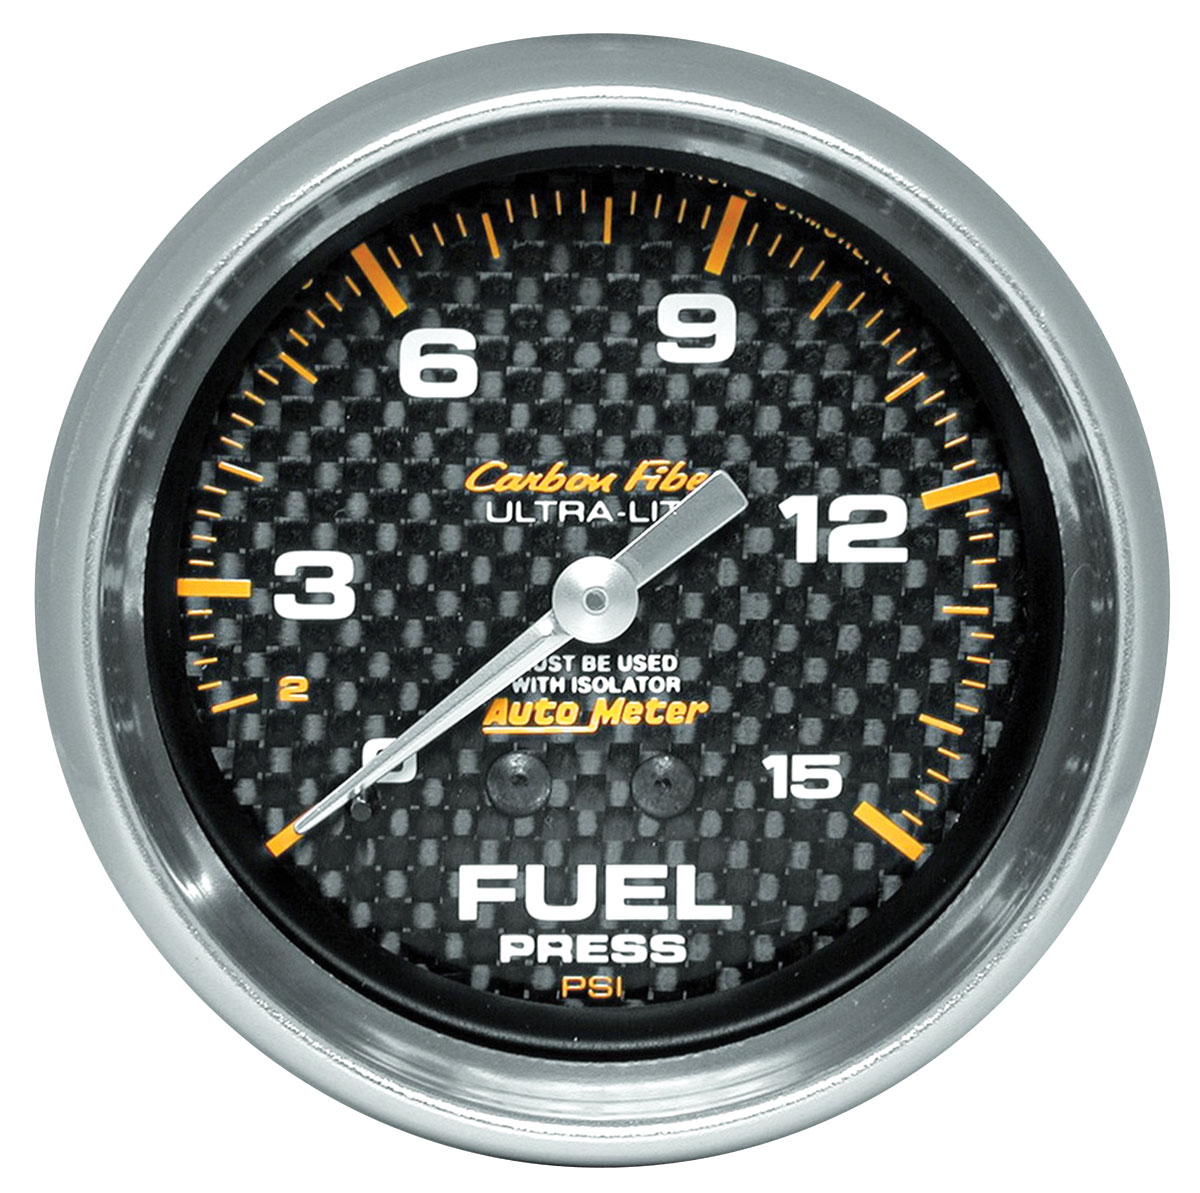 Photo of Gauges, Carbon Fiber Series fuel pressure w/isolator (0-15 psi)